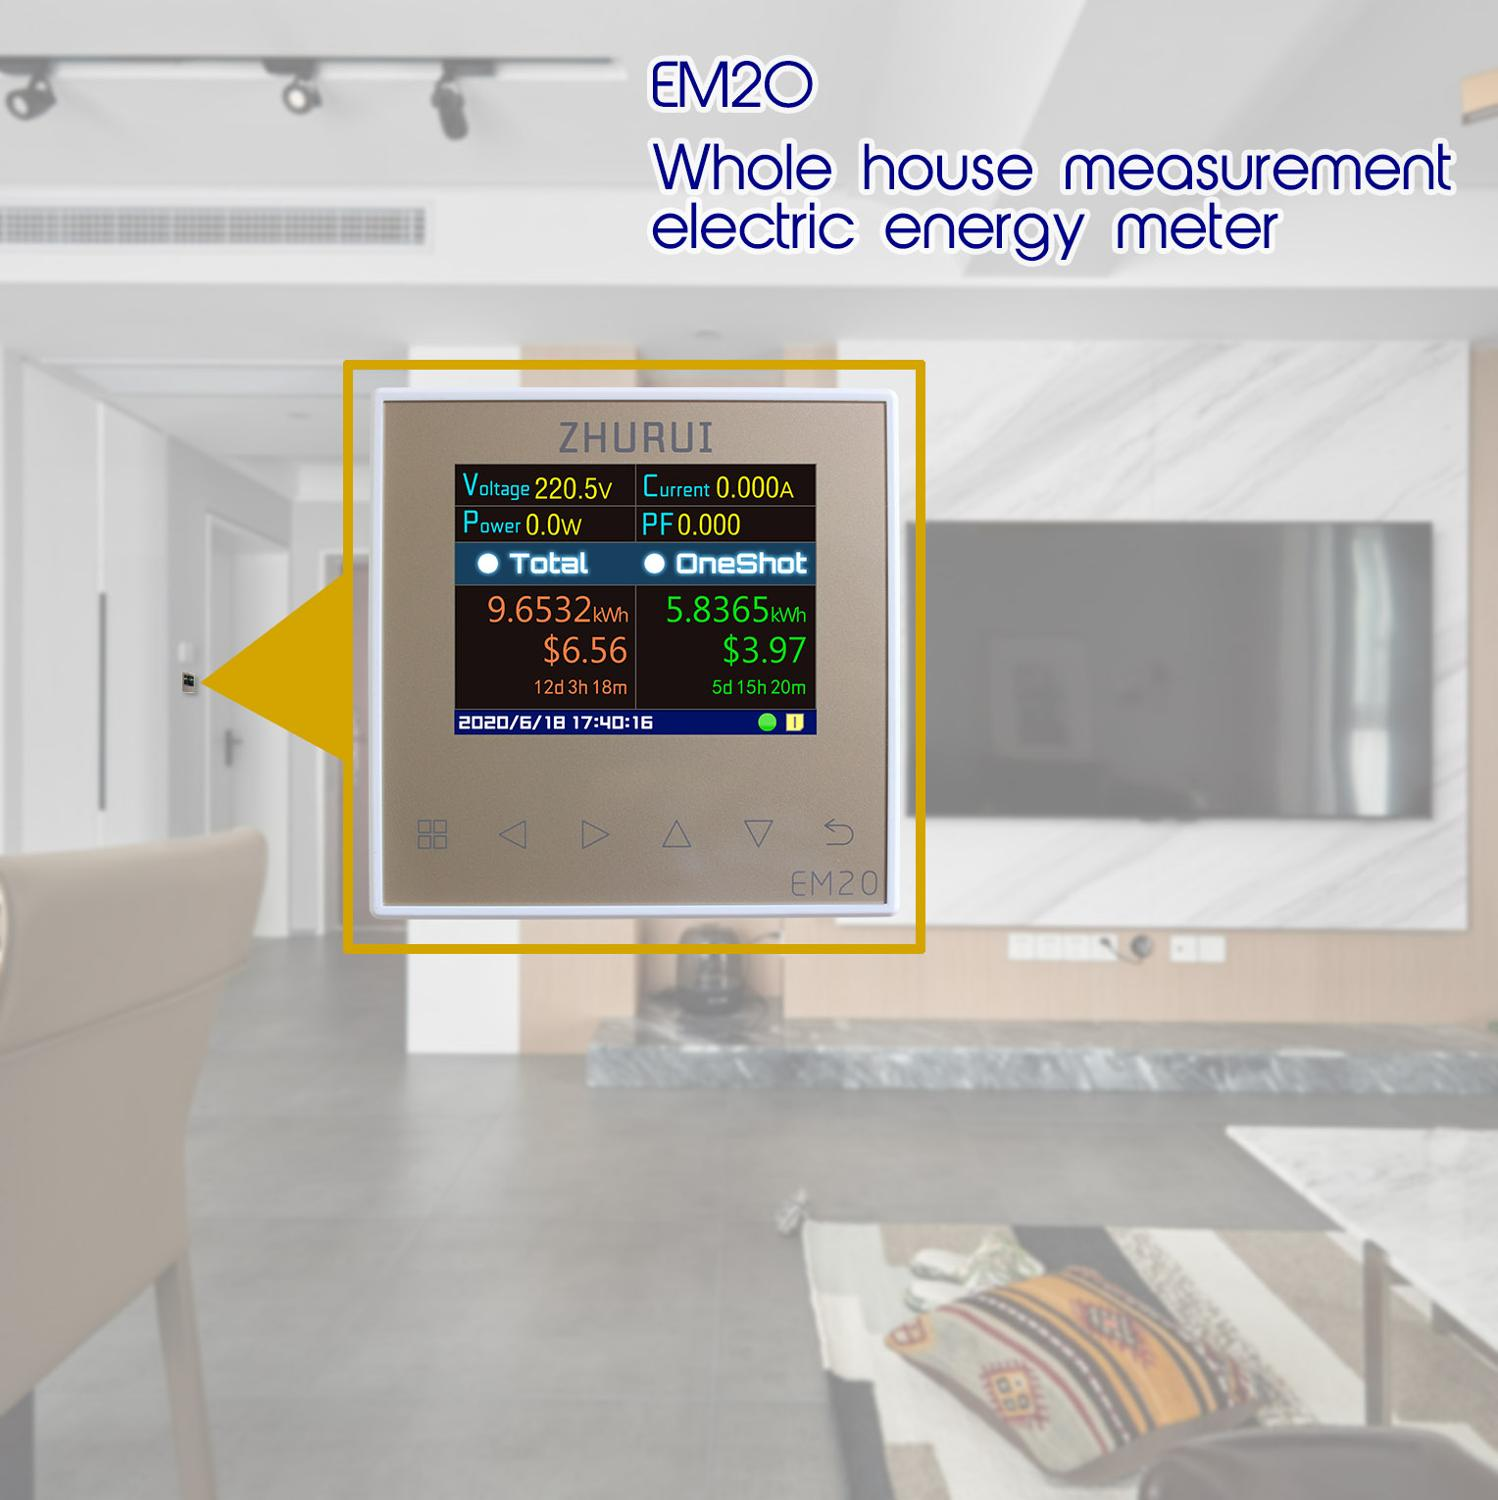 Whole With 120A 80 ER The EM20  External 40 Measure Electricity Meter  Energy Currency House  EM20 Relay  23 Meter ZHURUI 60